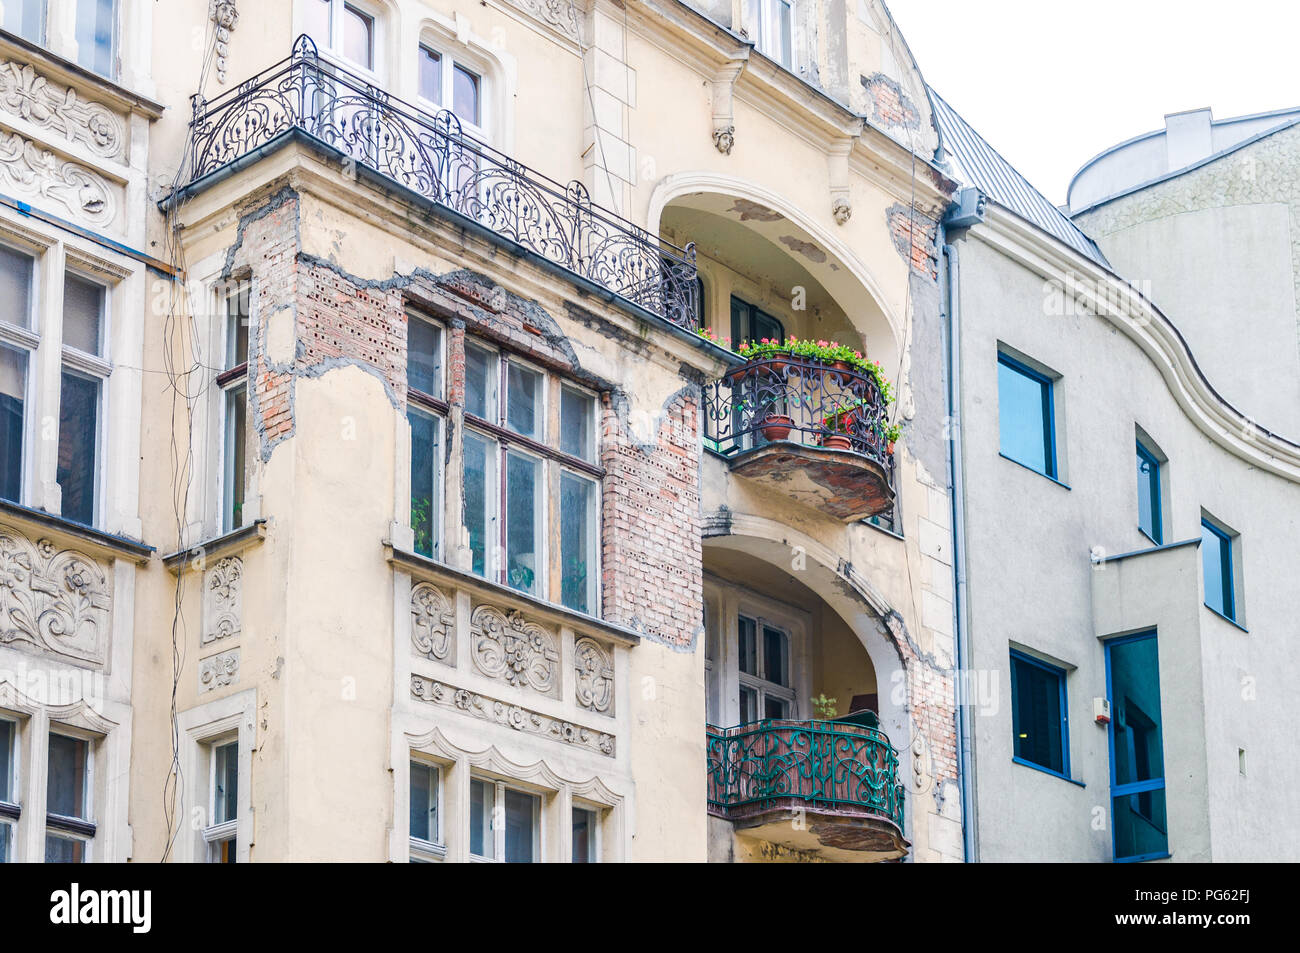 A dilapidated building with balconies and missing plaster showing exposed brick work in Poznań (Poznan), Poland - Stock Image